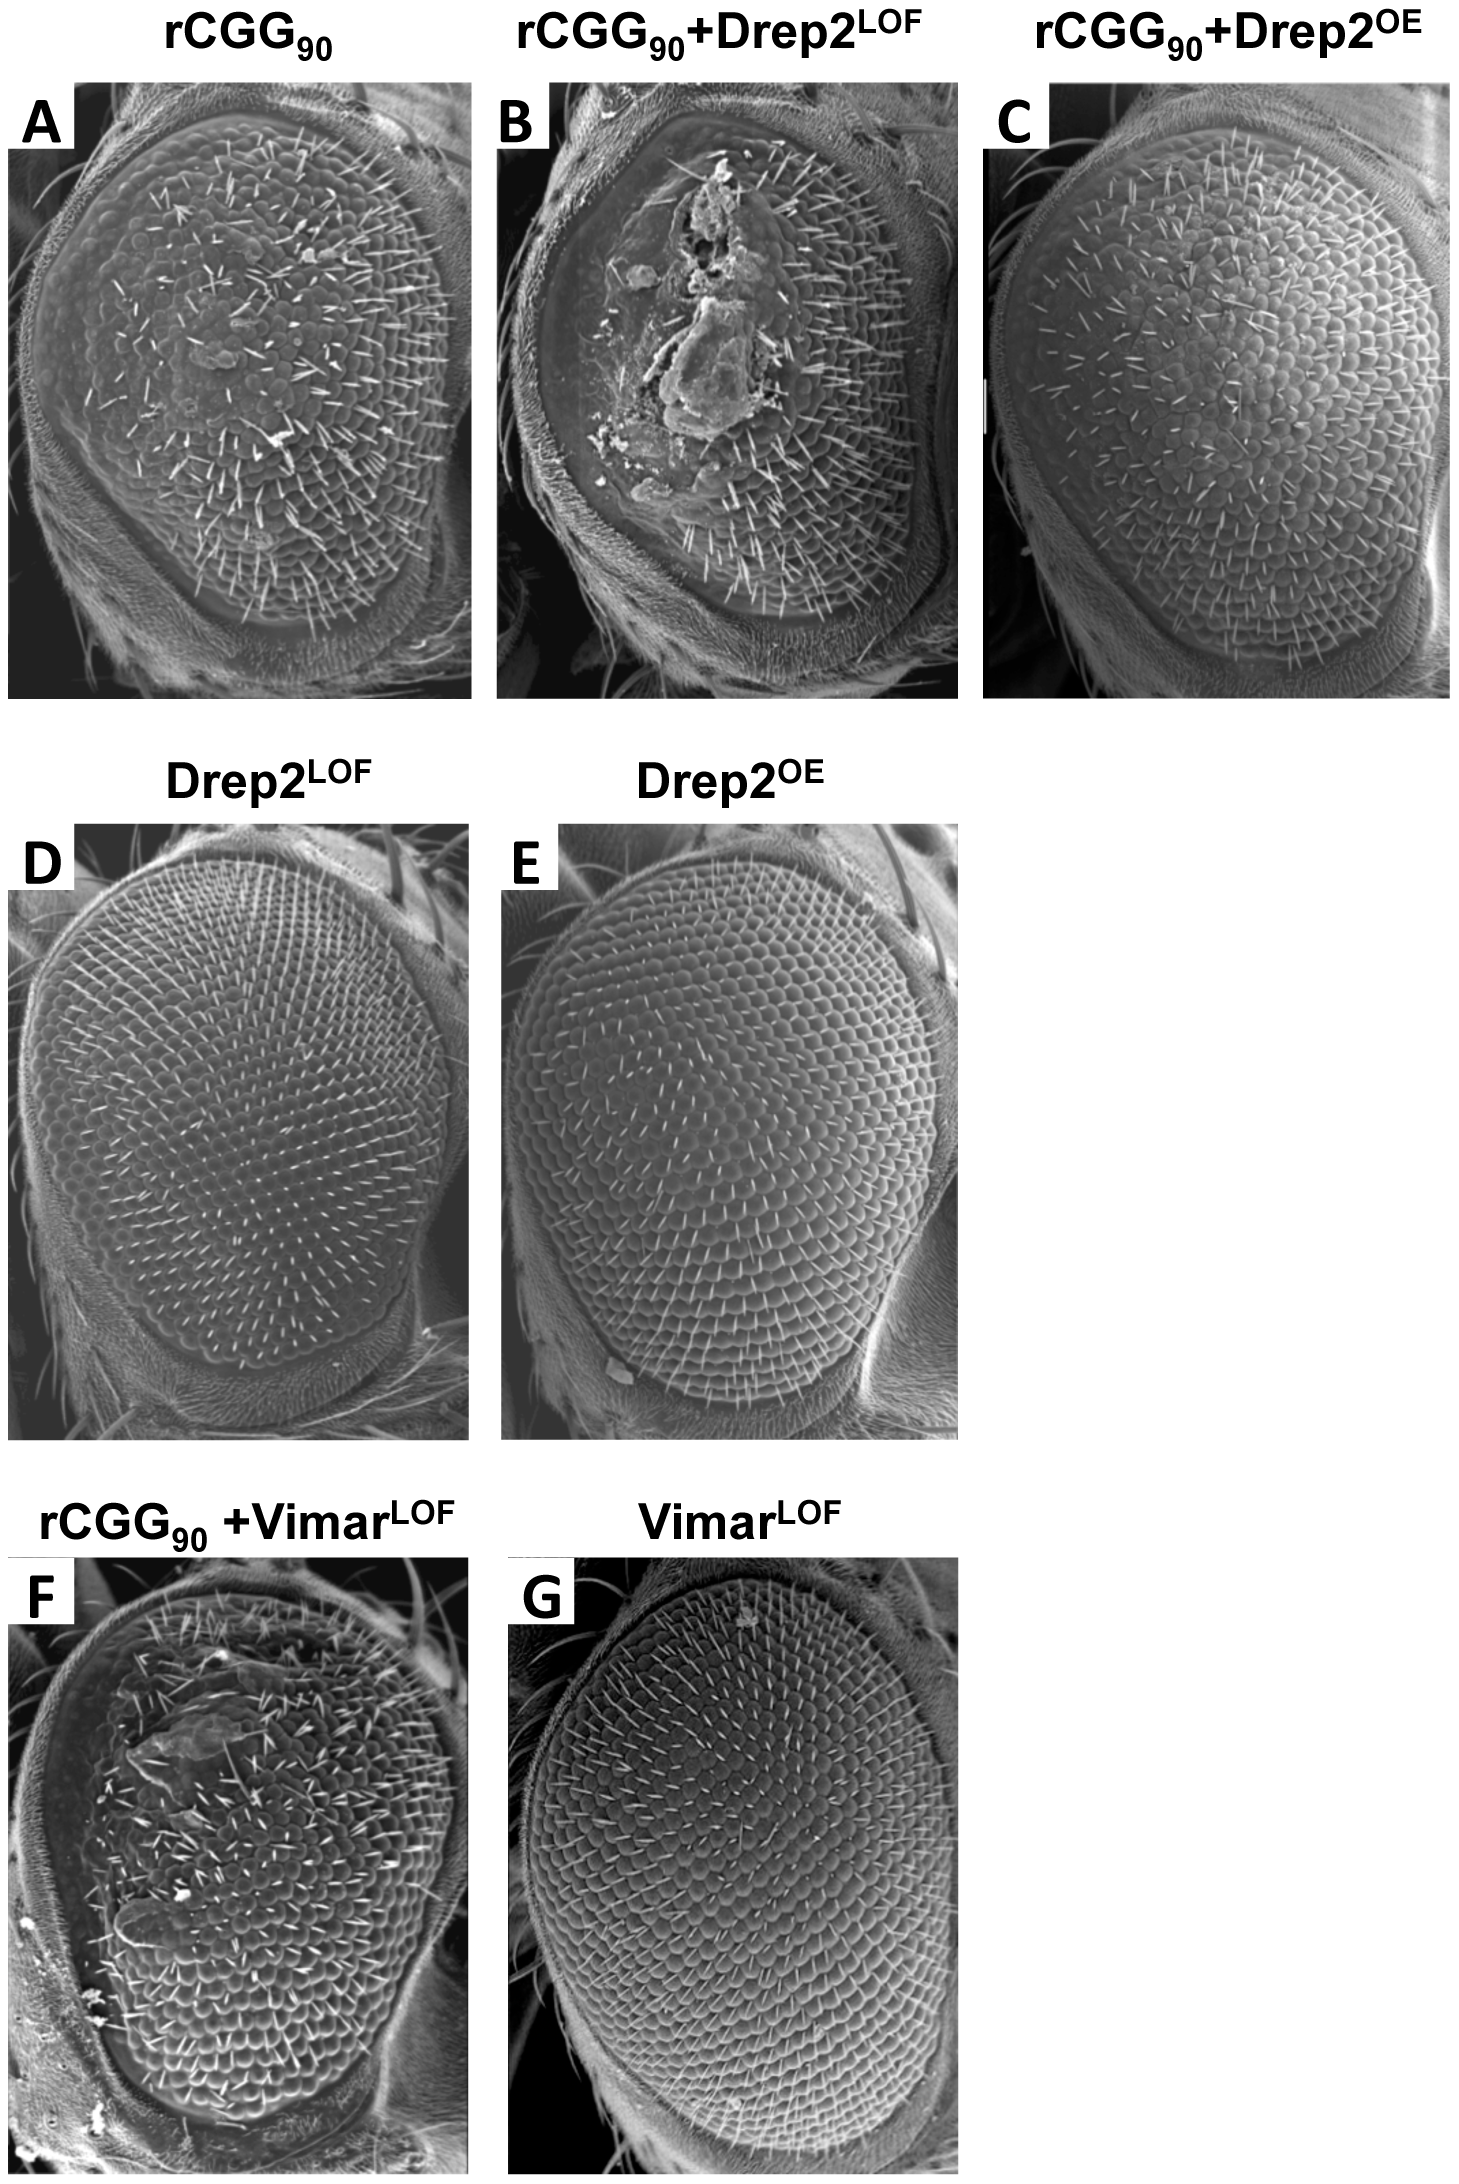 Modification of rCGG-mediated neurodegenerative eye phenotype by Drep-2 and Vimar.